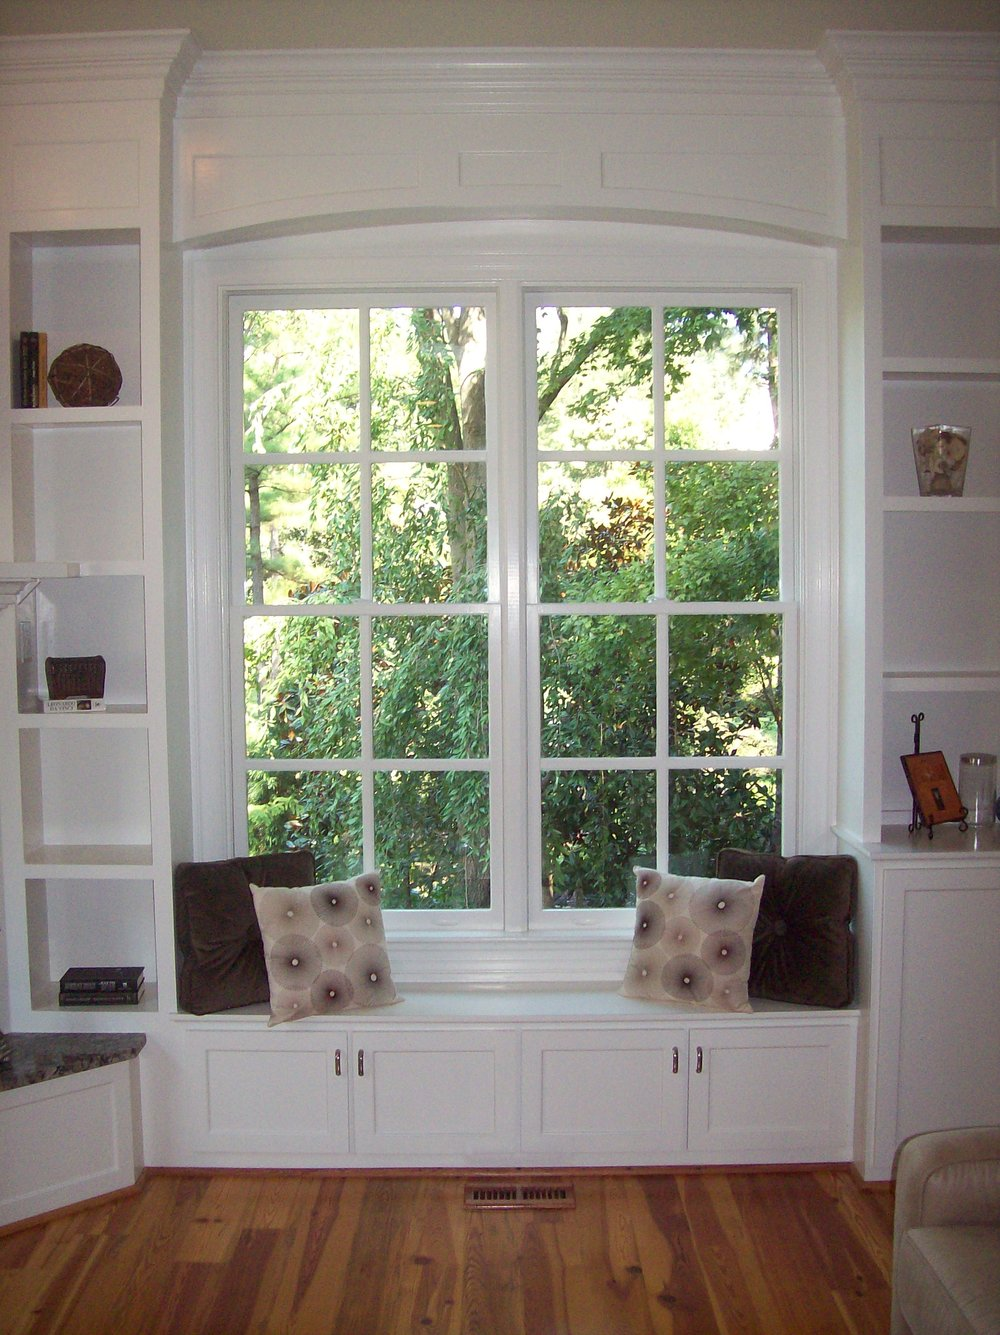 Built-In Window Seat